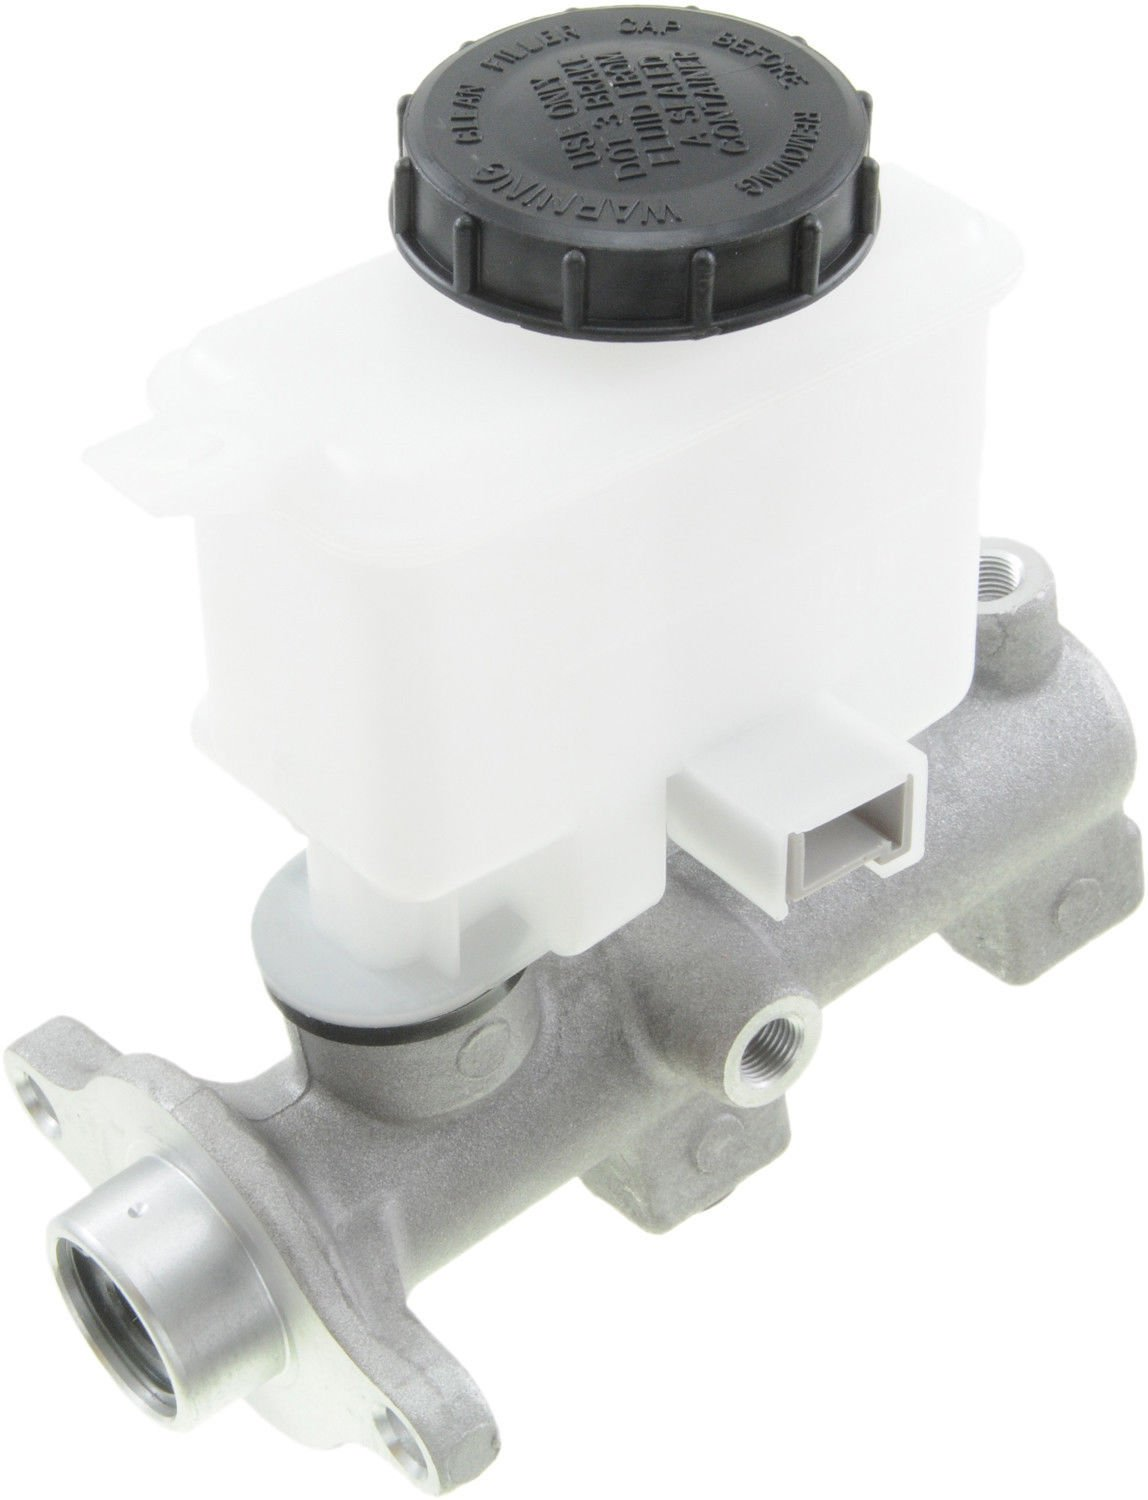 Brake Master Cylinder For Ford 1997 2003 Escort 1948 Automatic Transmission Rear Drum Brakes Without Antilock Mc390515 Automotive